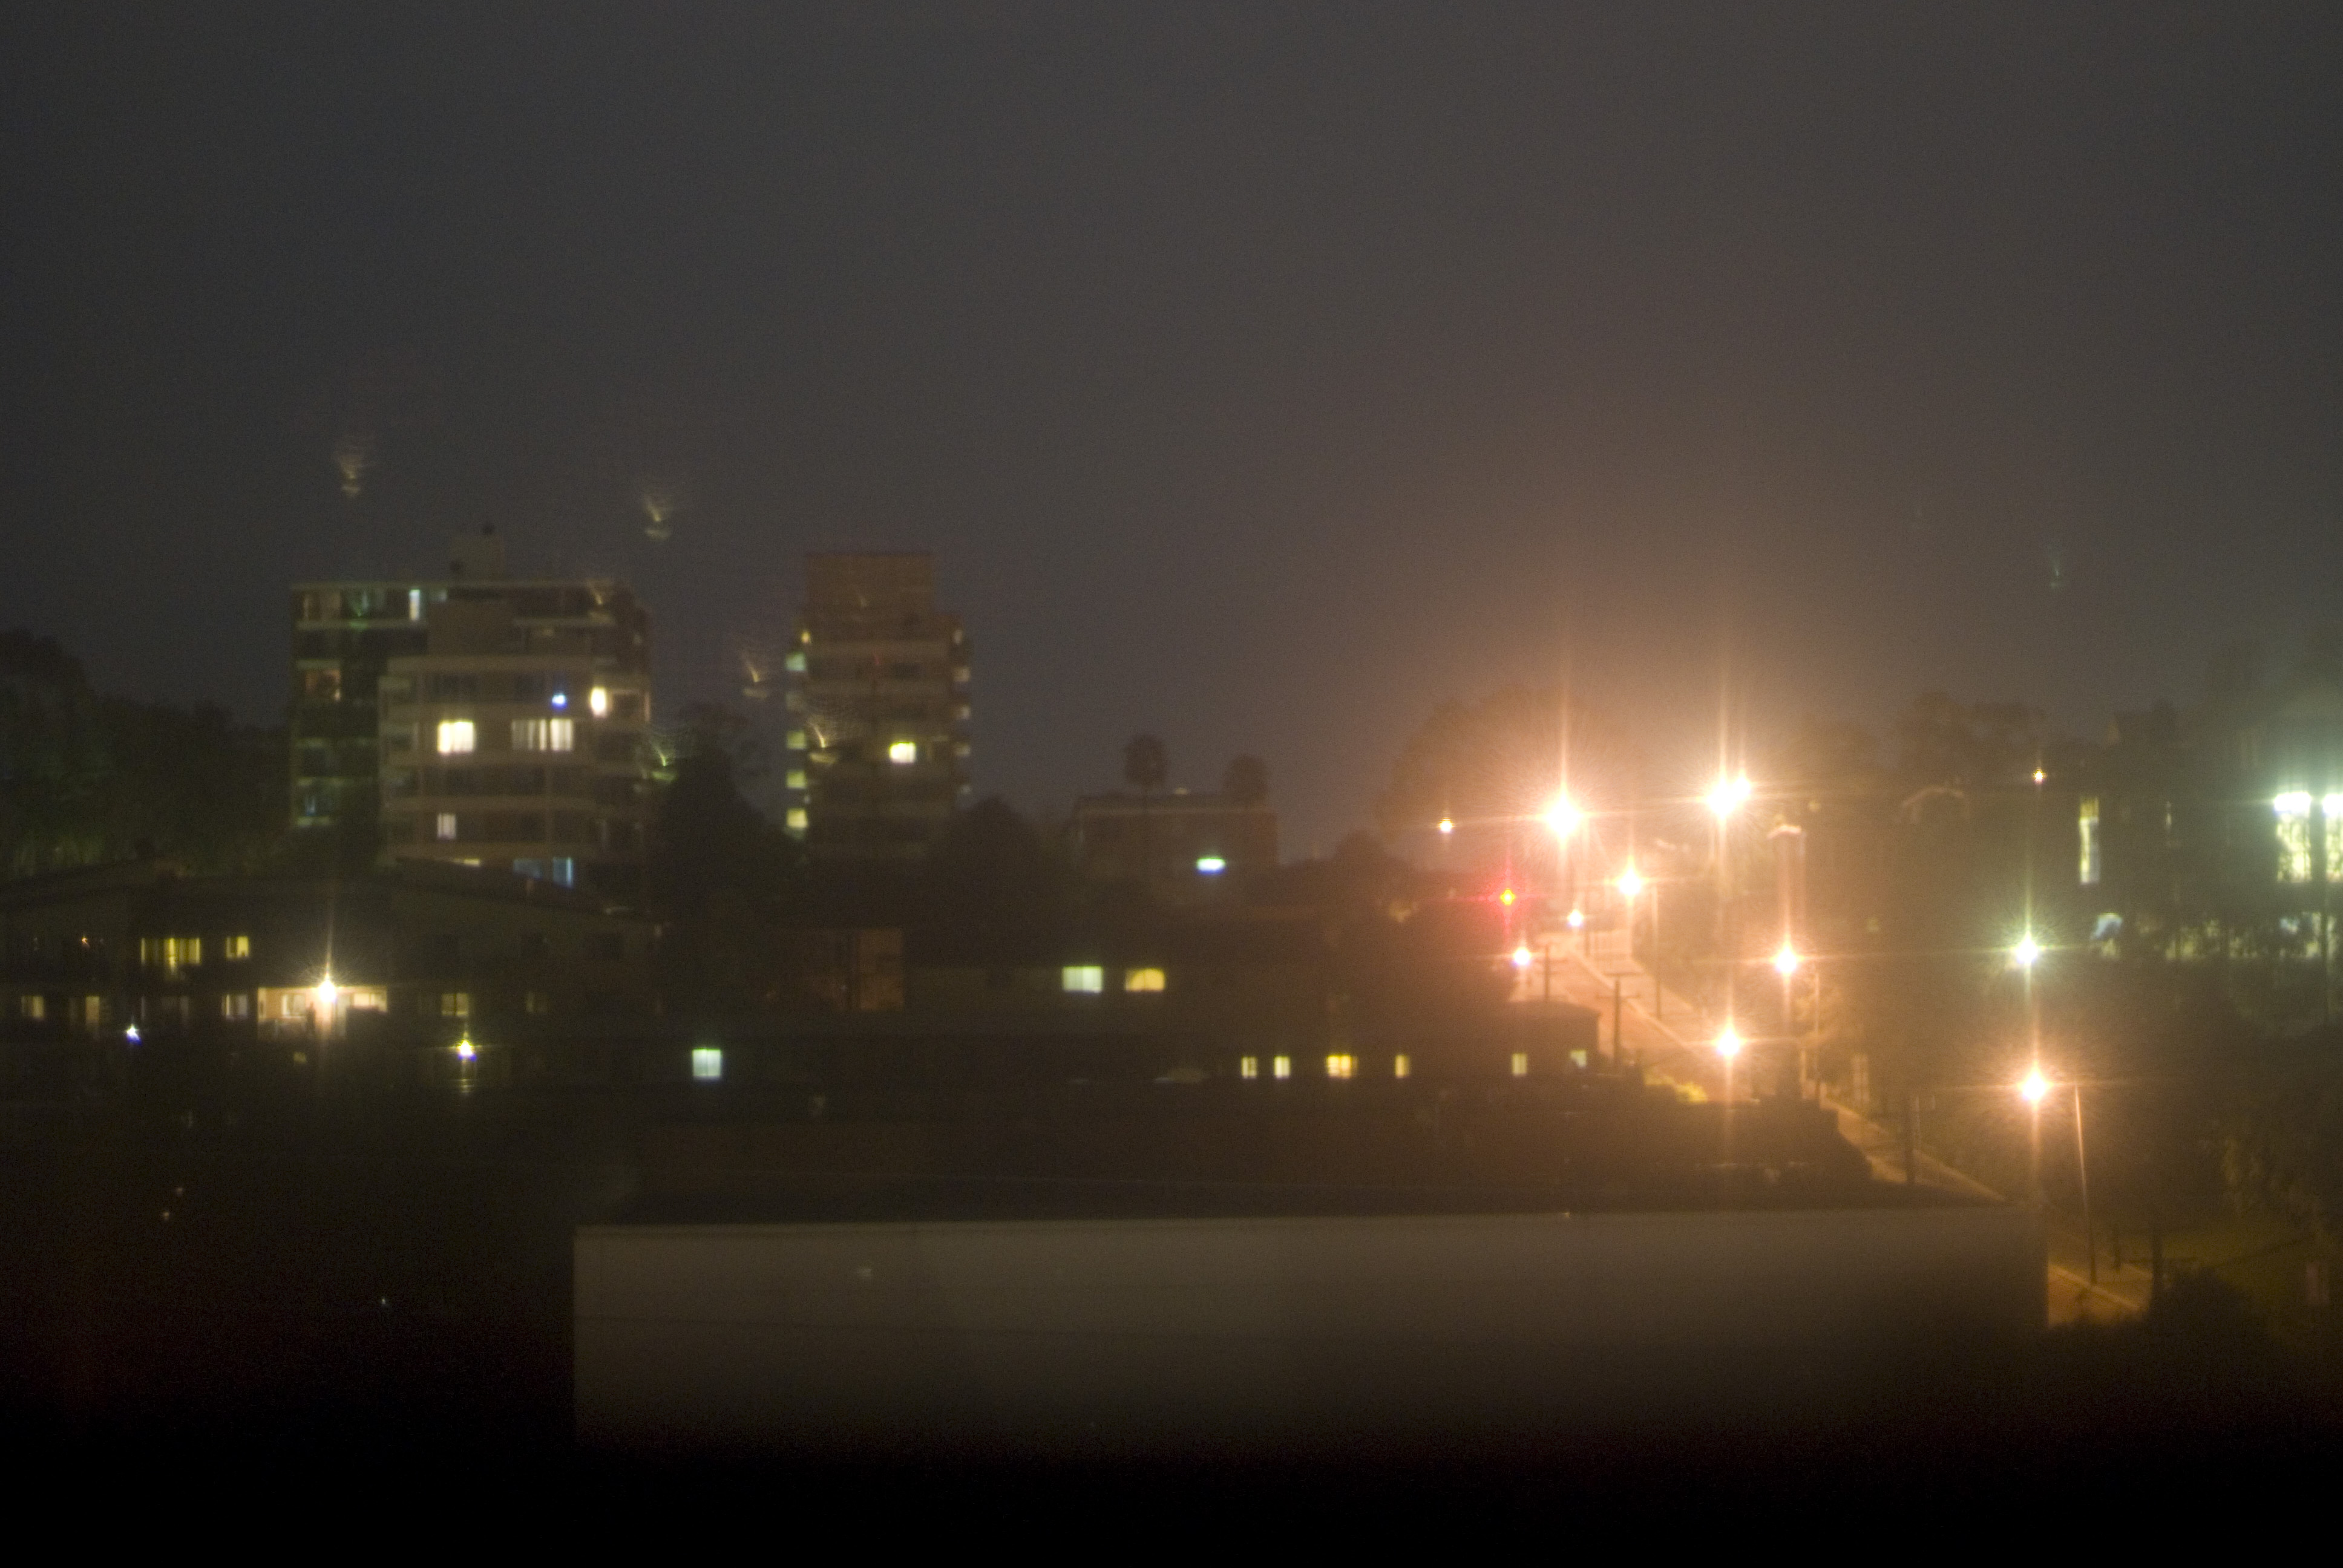 blurred out of focus effect - city lights at night